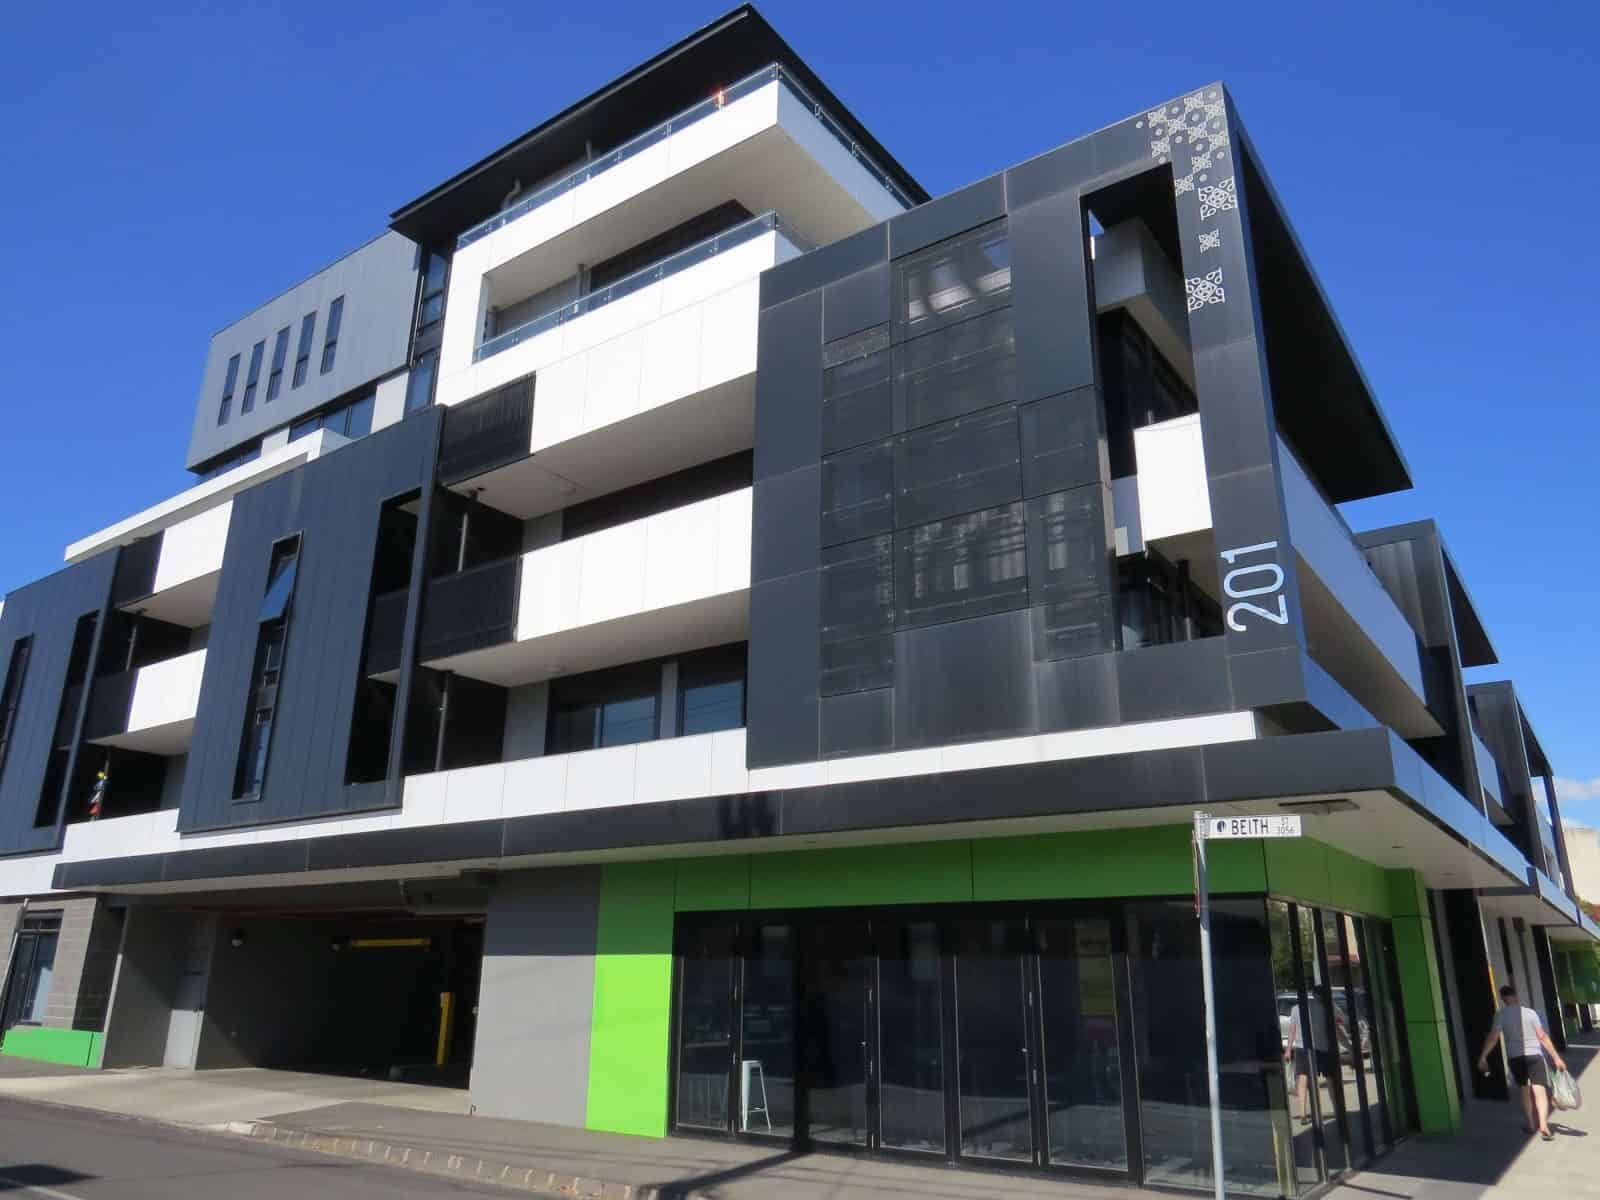 Network Pacific Strata Management: Franchising Success